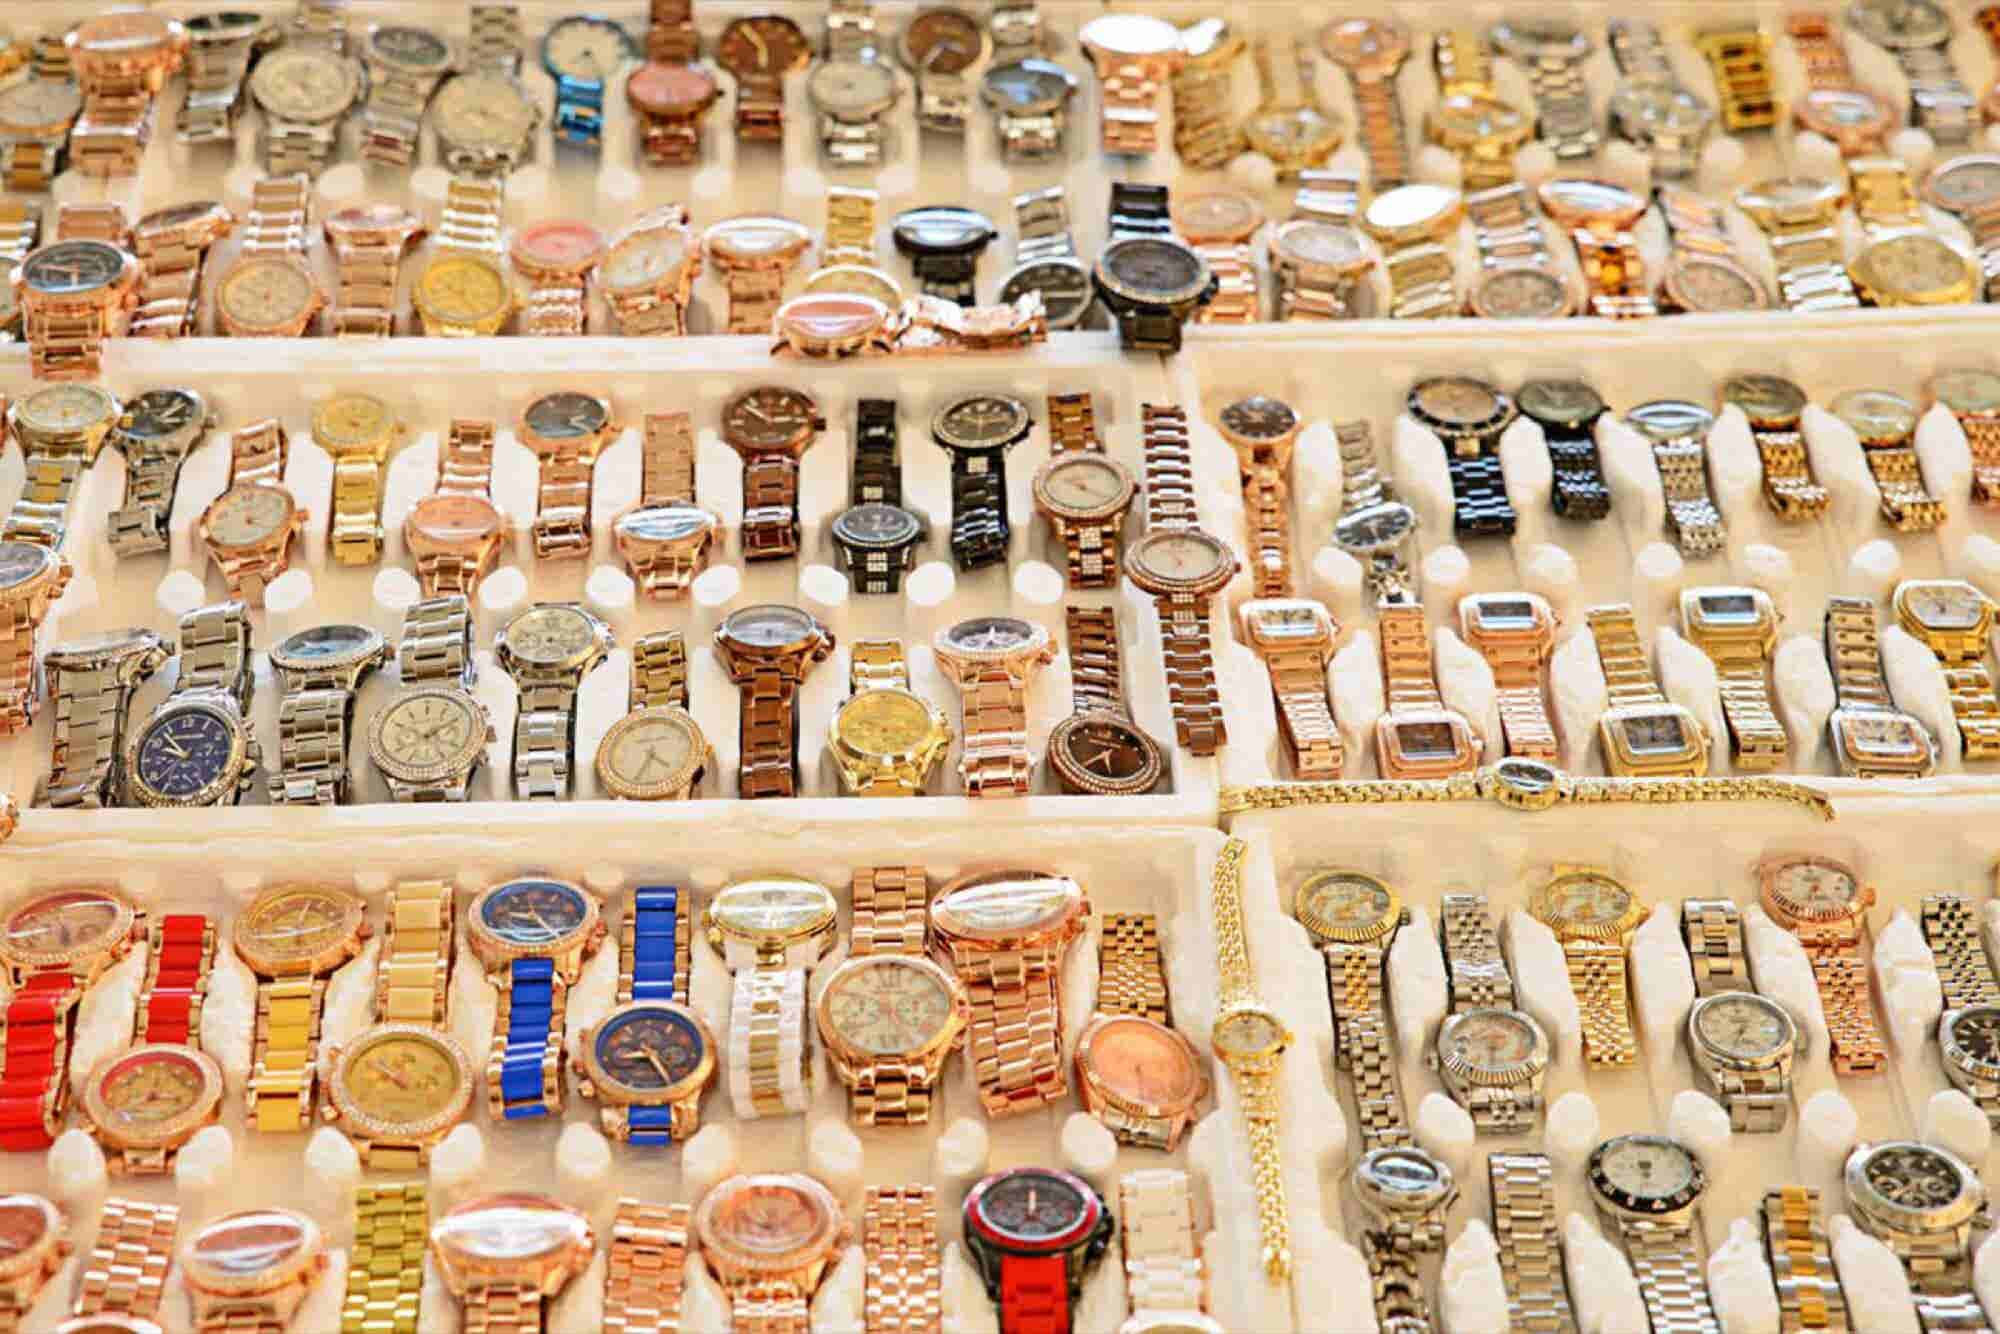 3 Steps for Excluding Counterfeit Goods and Protecting Your Brand